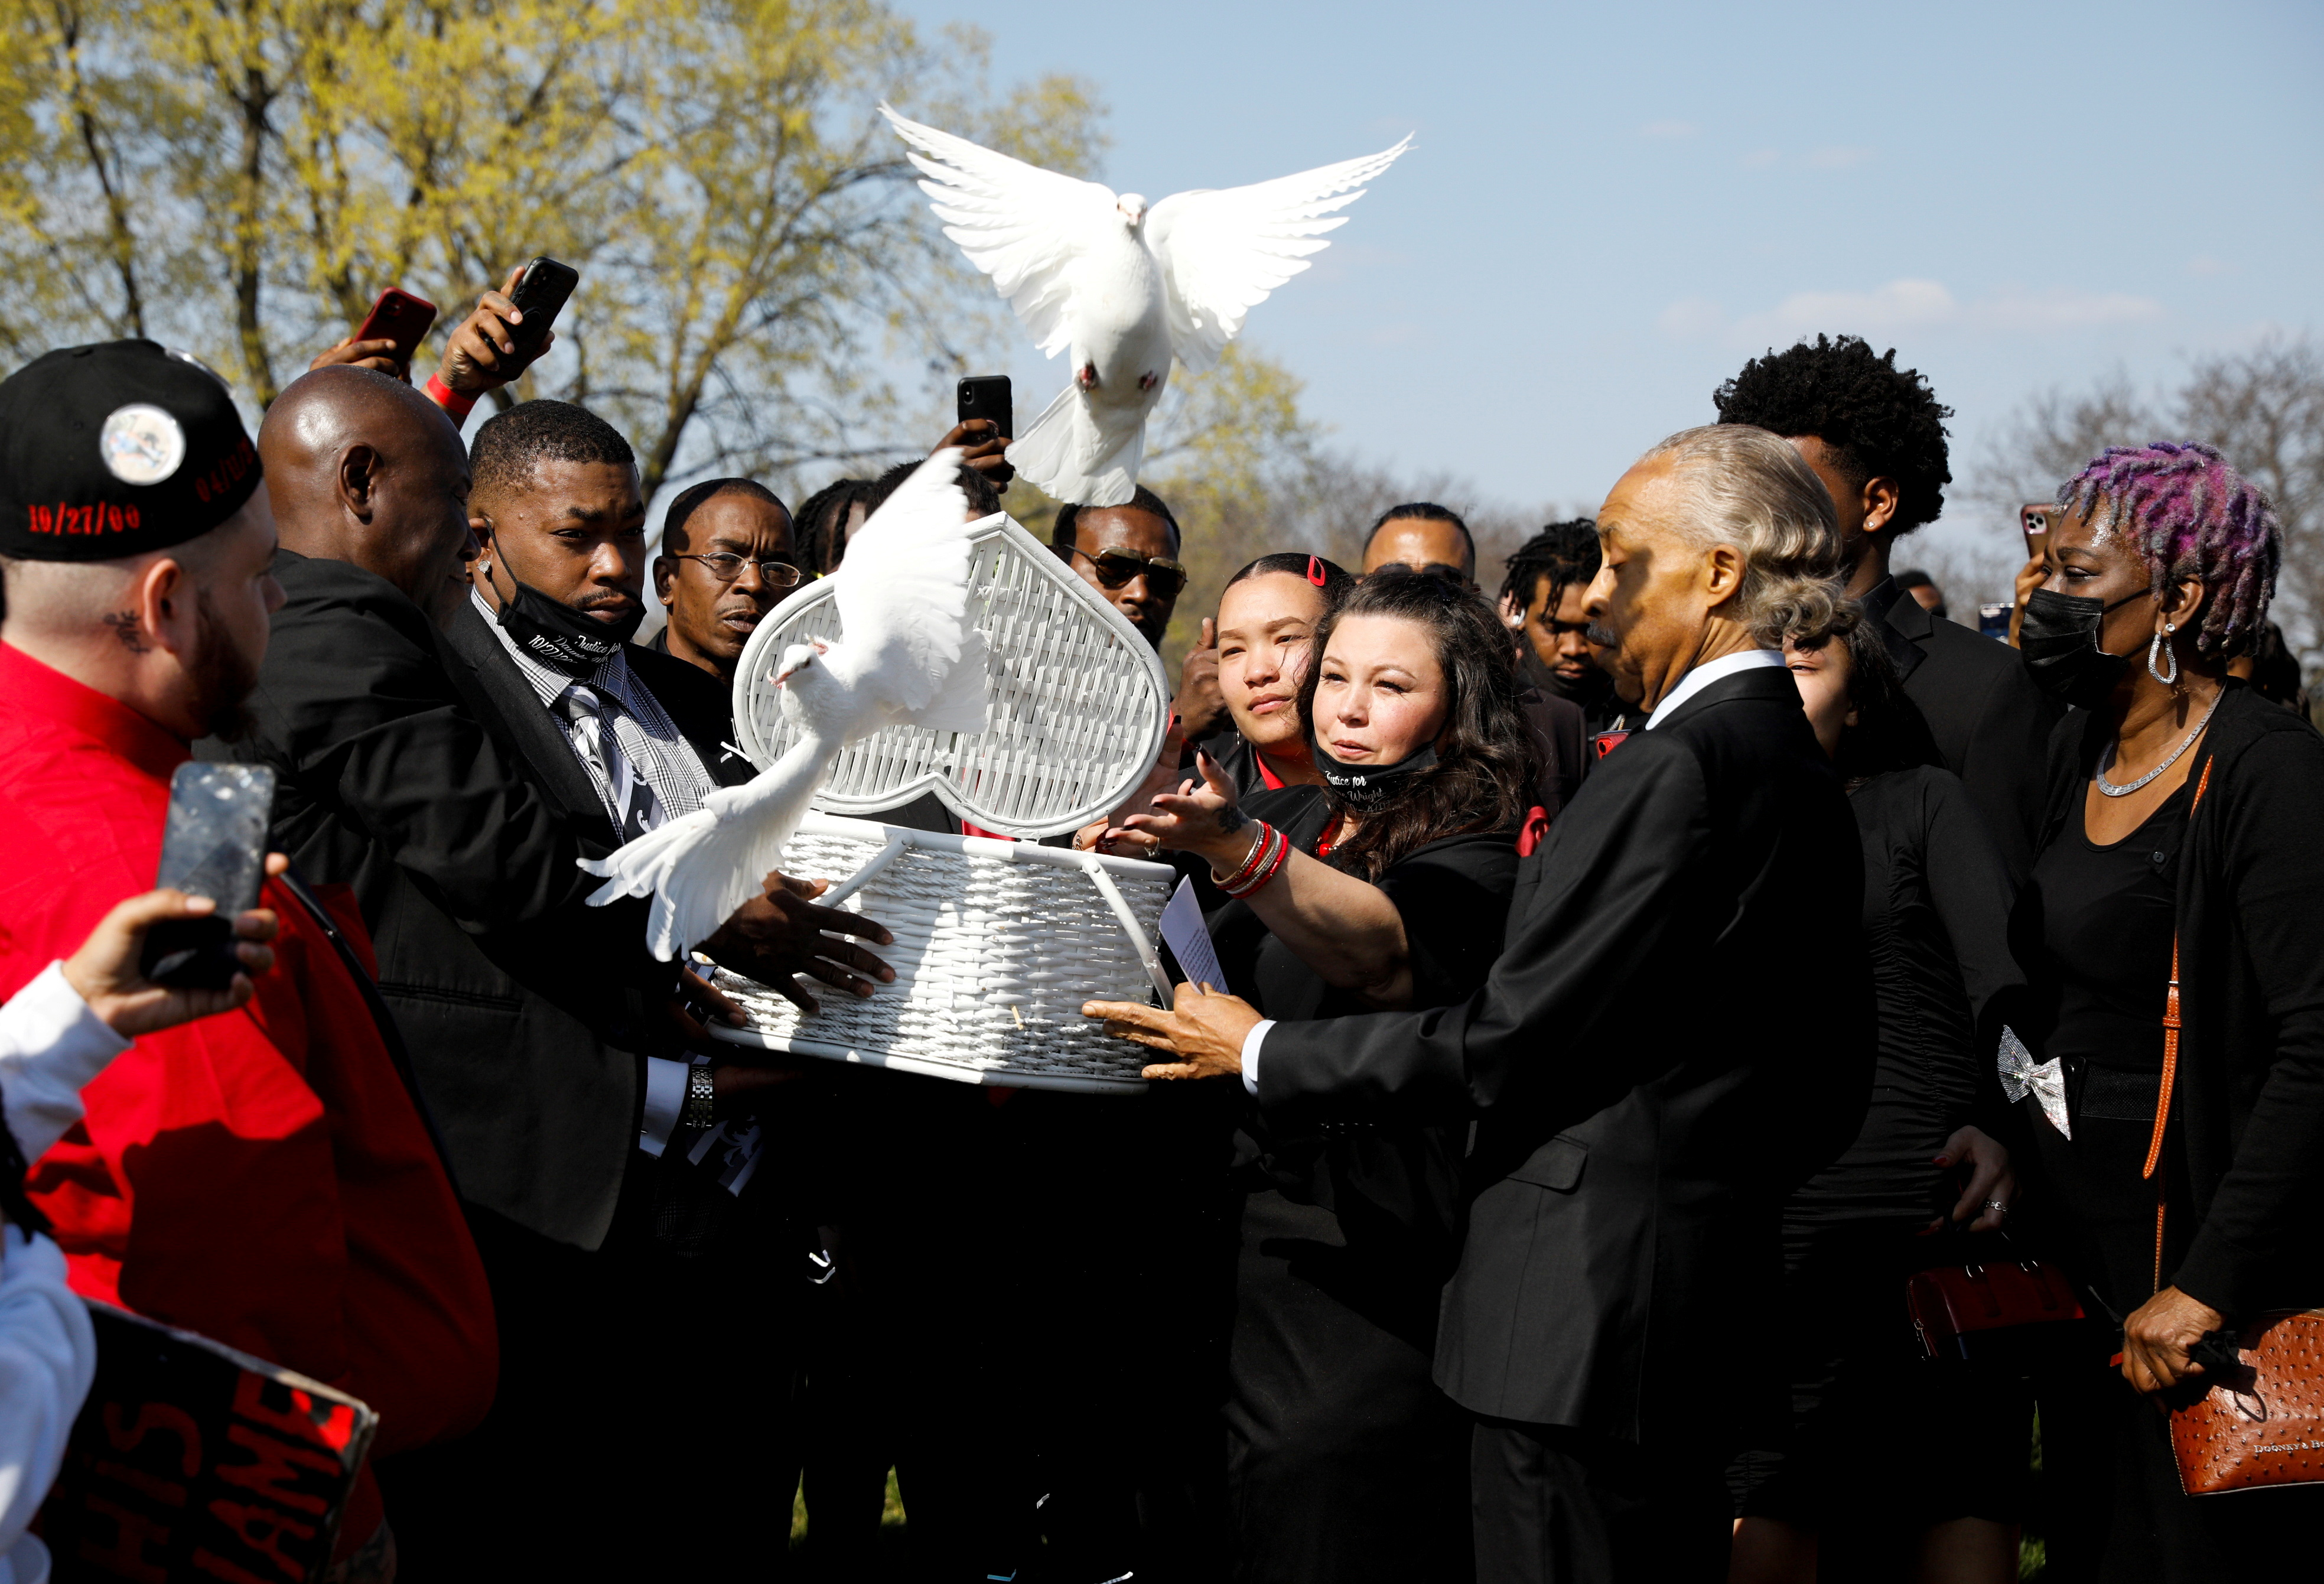 Katie Wright, the mother of Daunte Wright, a Black man who was fatally shot by a police officer after a routine traffic stop, accompanied by family members and Rev. Al Sharpton, releases doves during his funeral at Lakewood Cemetery, in Minneapolis, Minnesota, U.S., April 22, 2021. REUTERS/Nicholas Pfosi